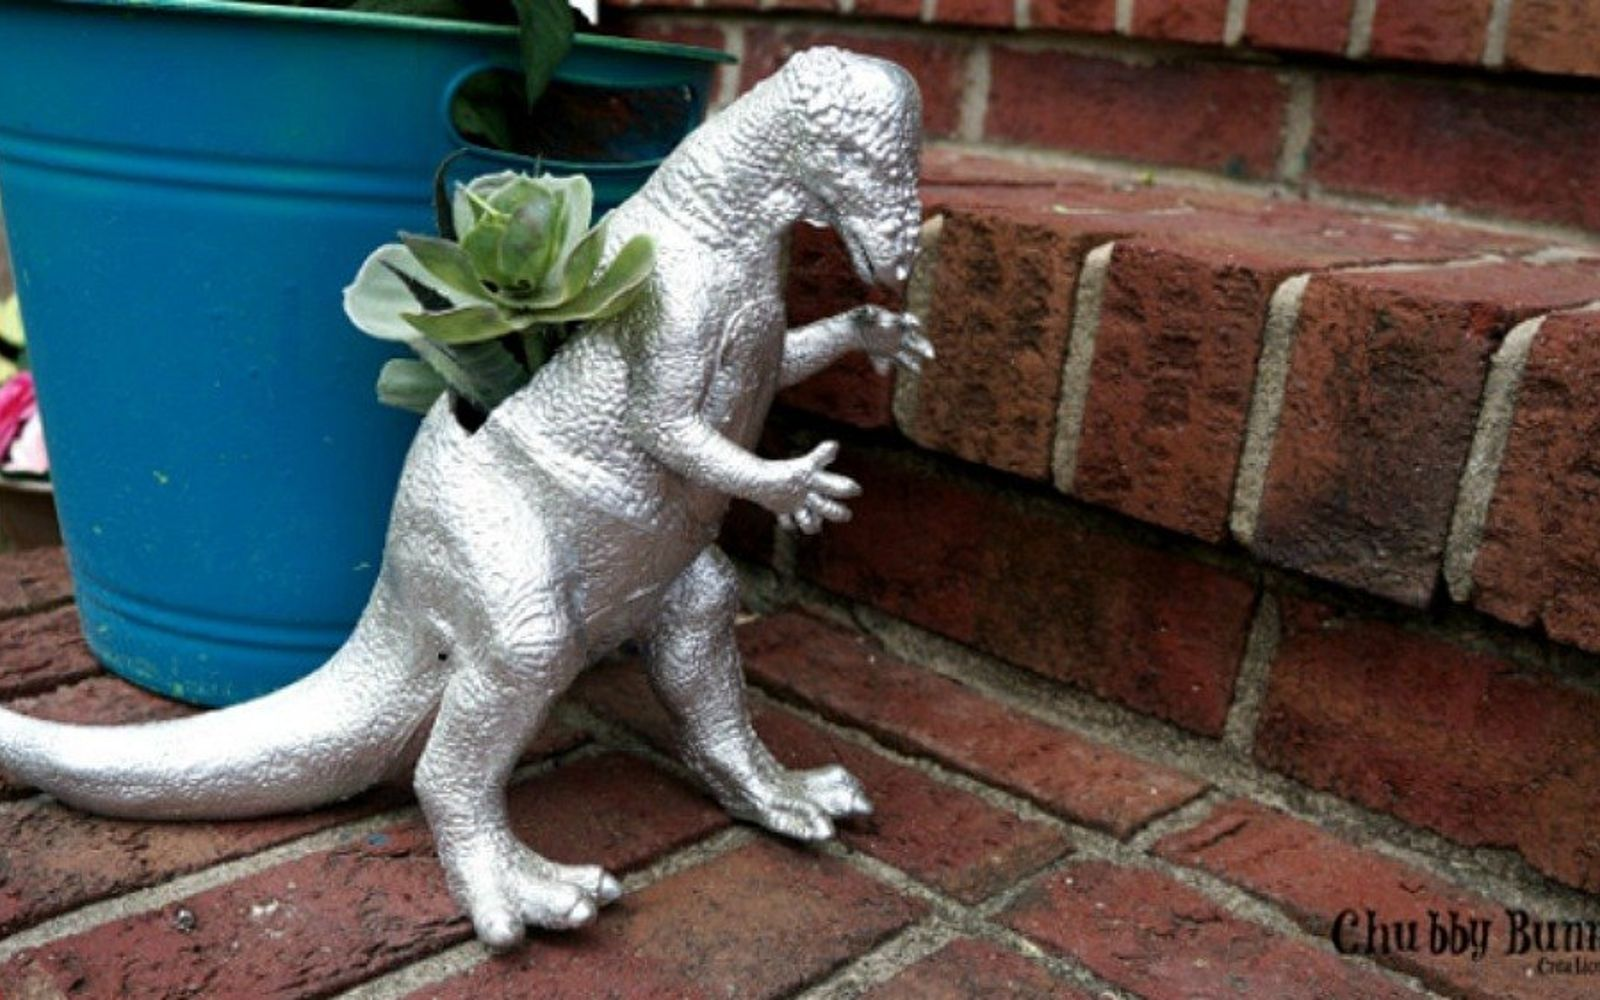 s 17 insanely fun ways to display your favorite succulents, flowers, gardening, succulents, Turn a dinosaur toy into a planter